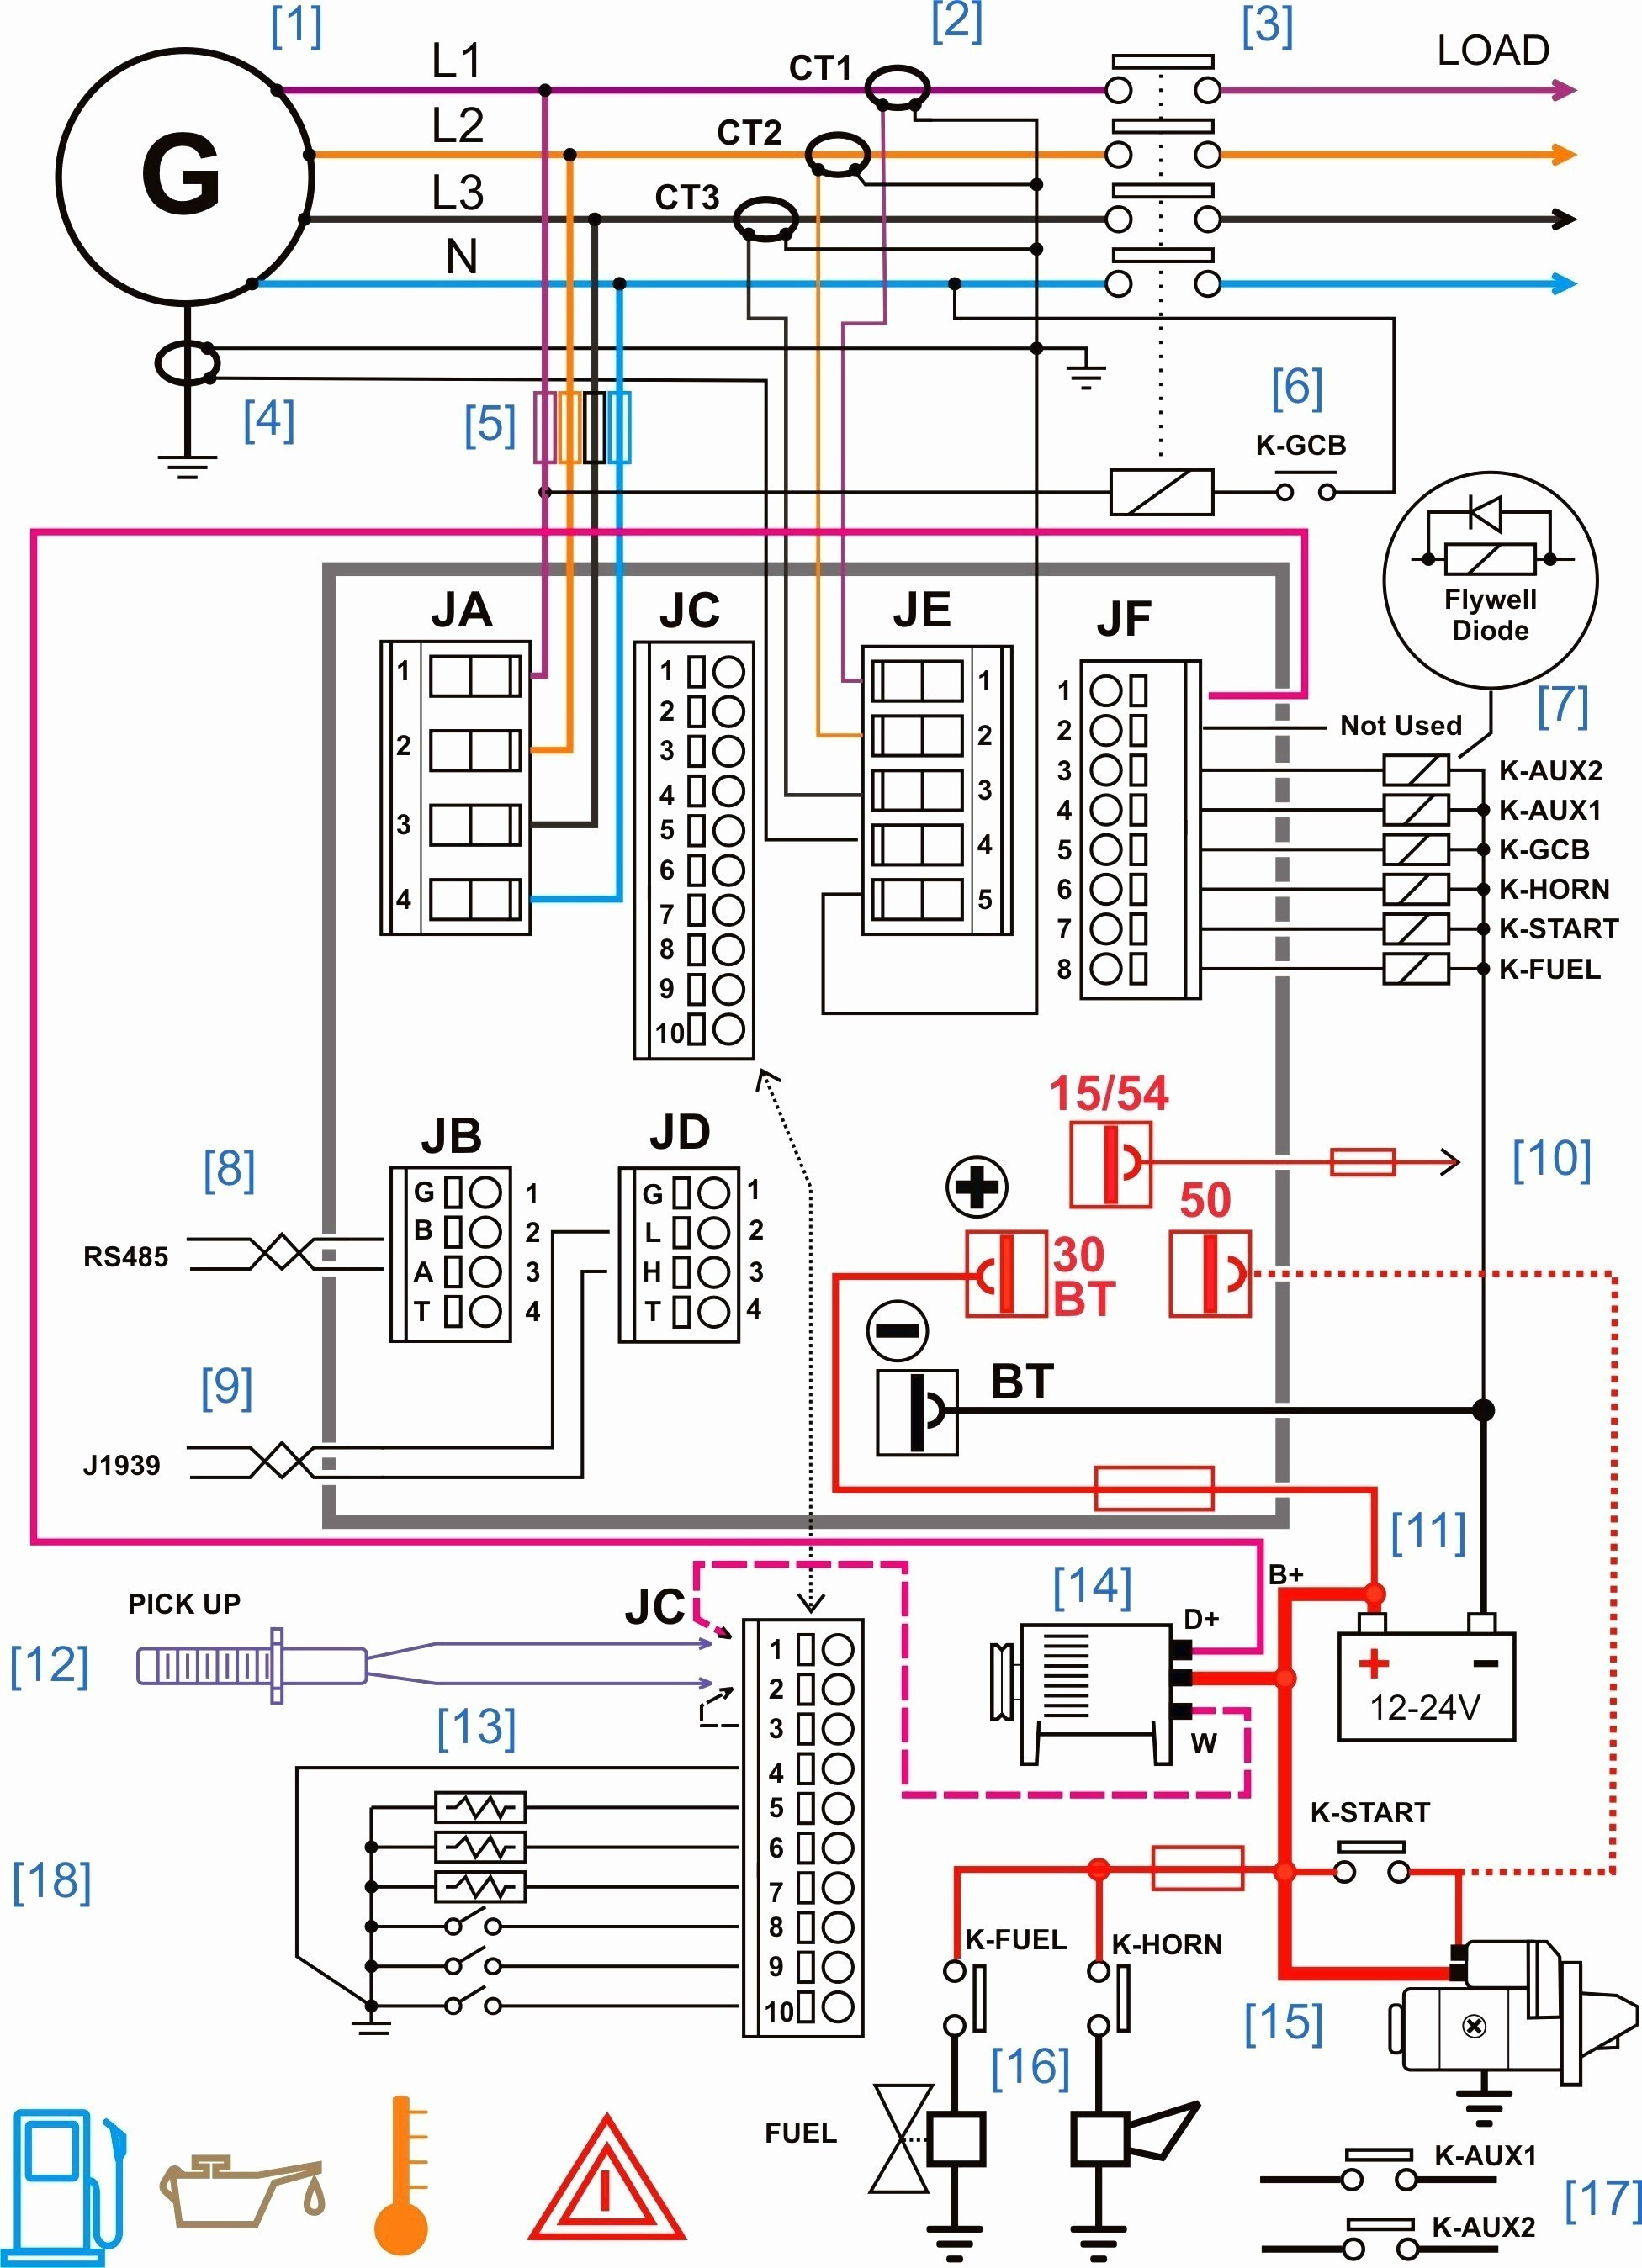 Car Alarm Installation Wiring Diagram Save Audi A4 Cd Player Wiring Diagram Of Car Alarm Installation Wiring Diagram